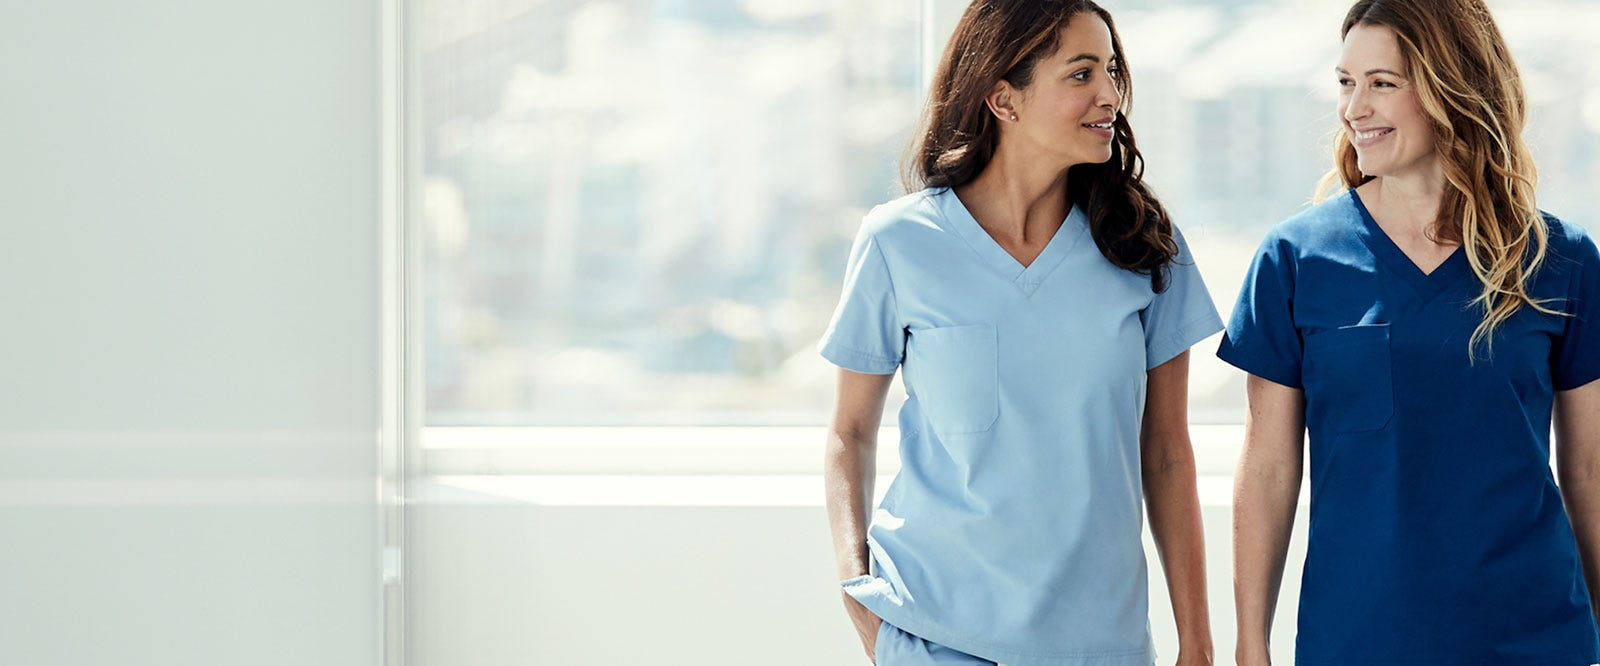 womens physician uniforms